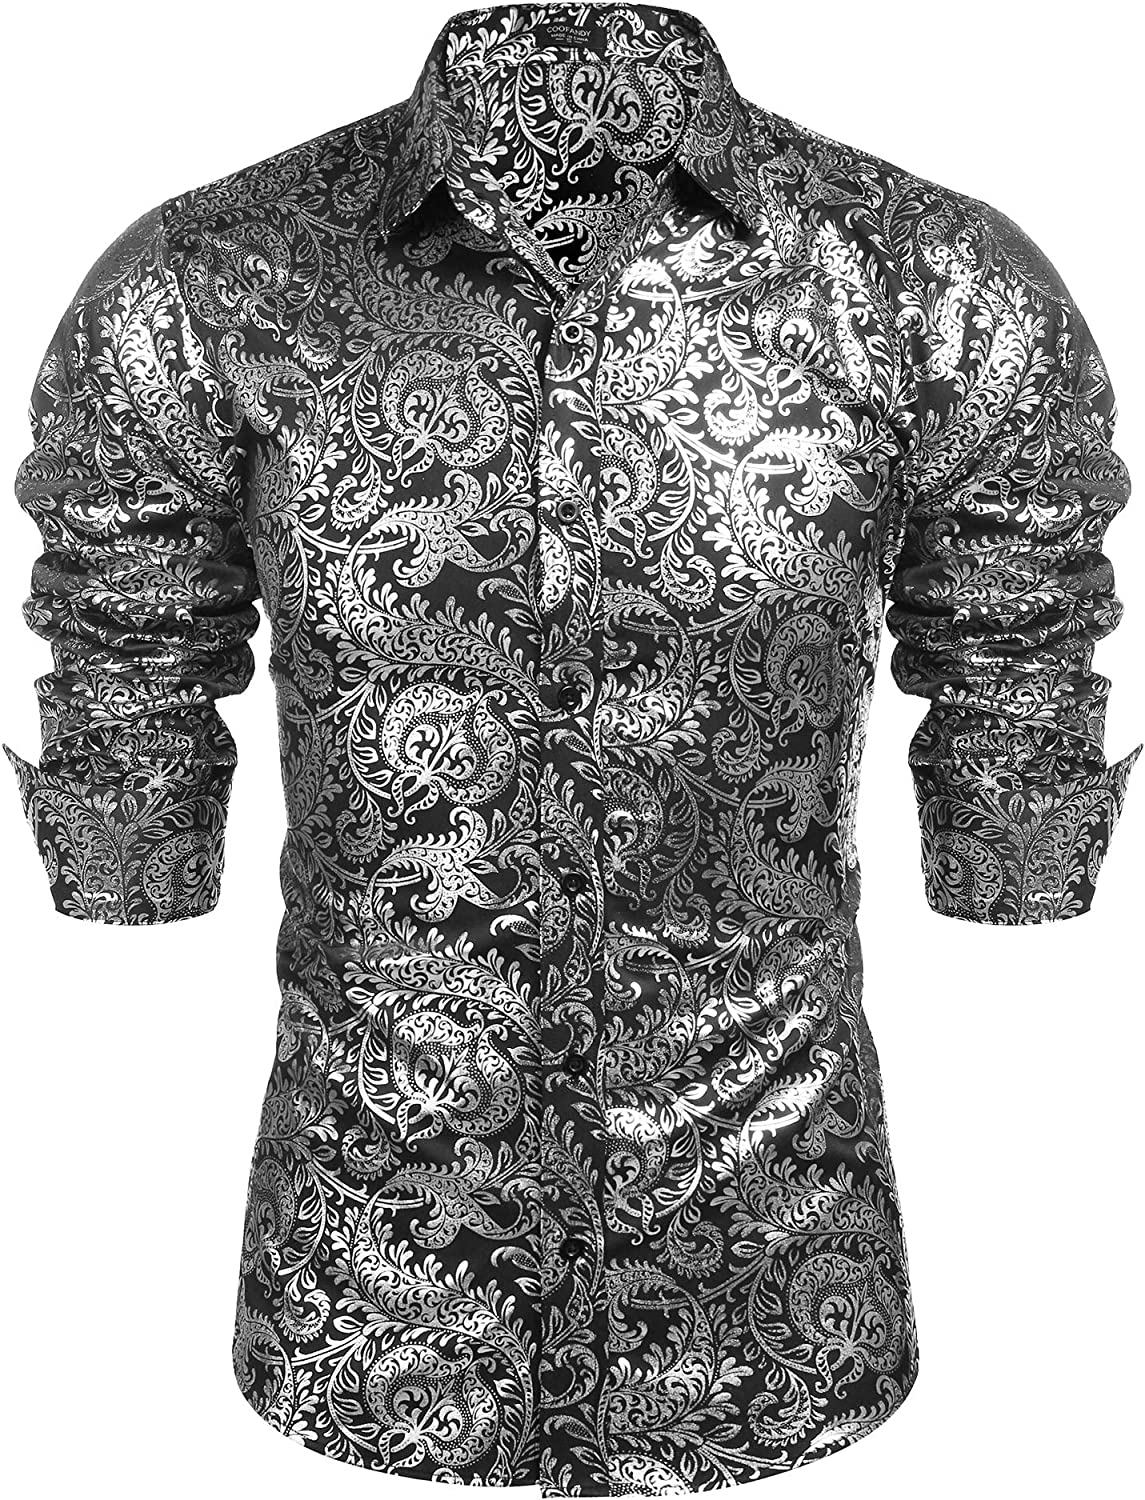 COOFANDY Men's Luxury Design Shirts Floral Dress Shirt Casual Button Down  Shirts at Amazon Men's Clothing store